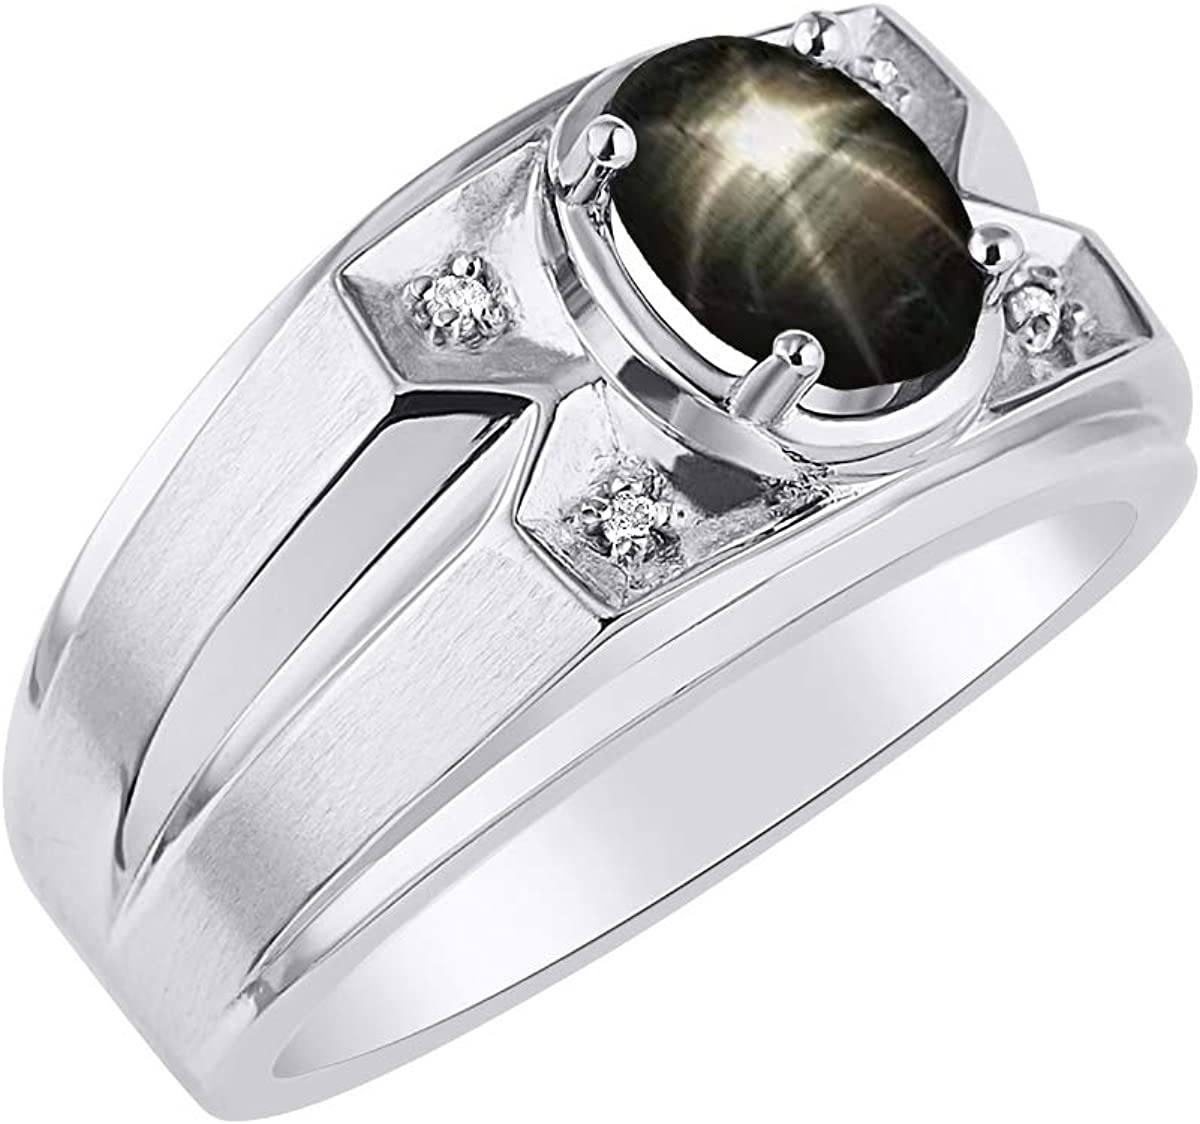 RYLOS Mens Ring with Oval Shape Gemstone & Genuine Sparkling Diamond Ring in 14K White Gold - 8X6MM Color Stone Black Star Sapphire